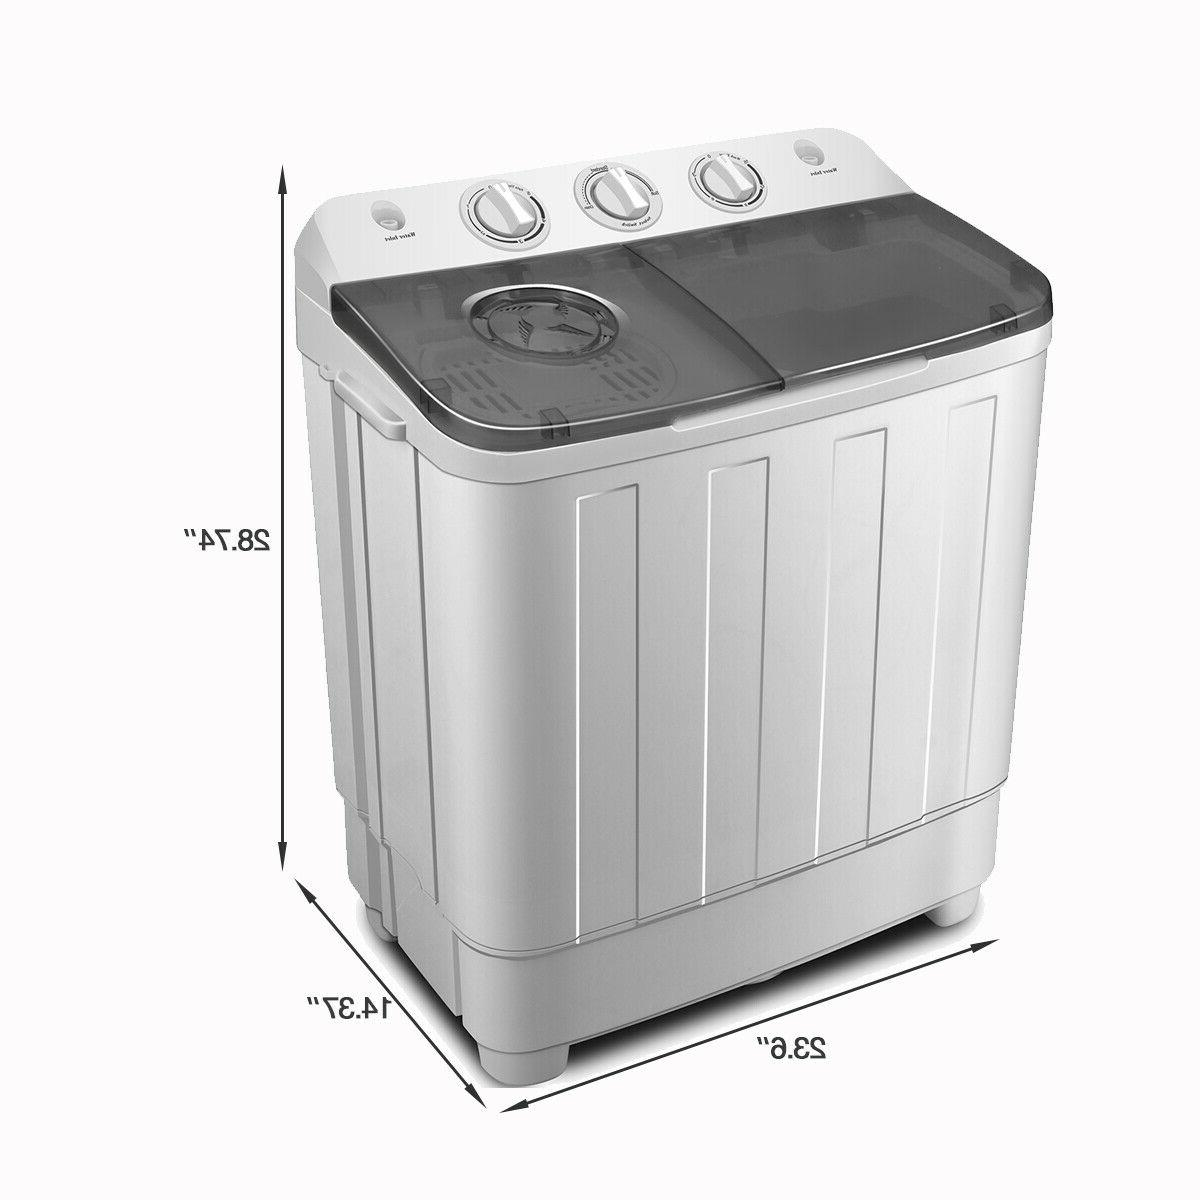 17LBS Top Machine Compact Laundry Dryer